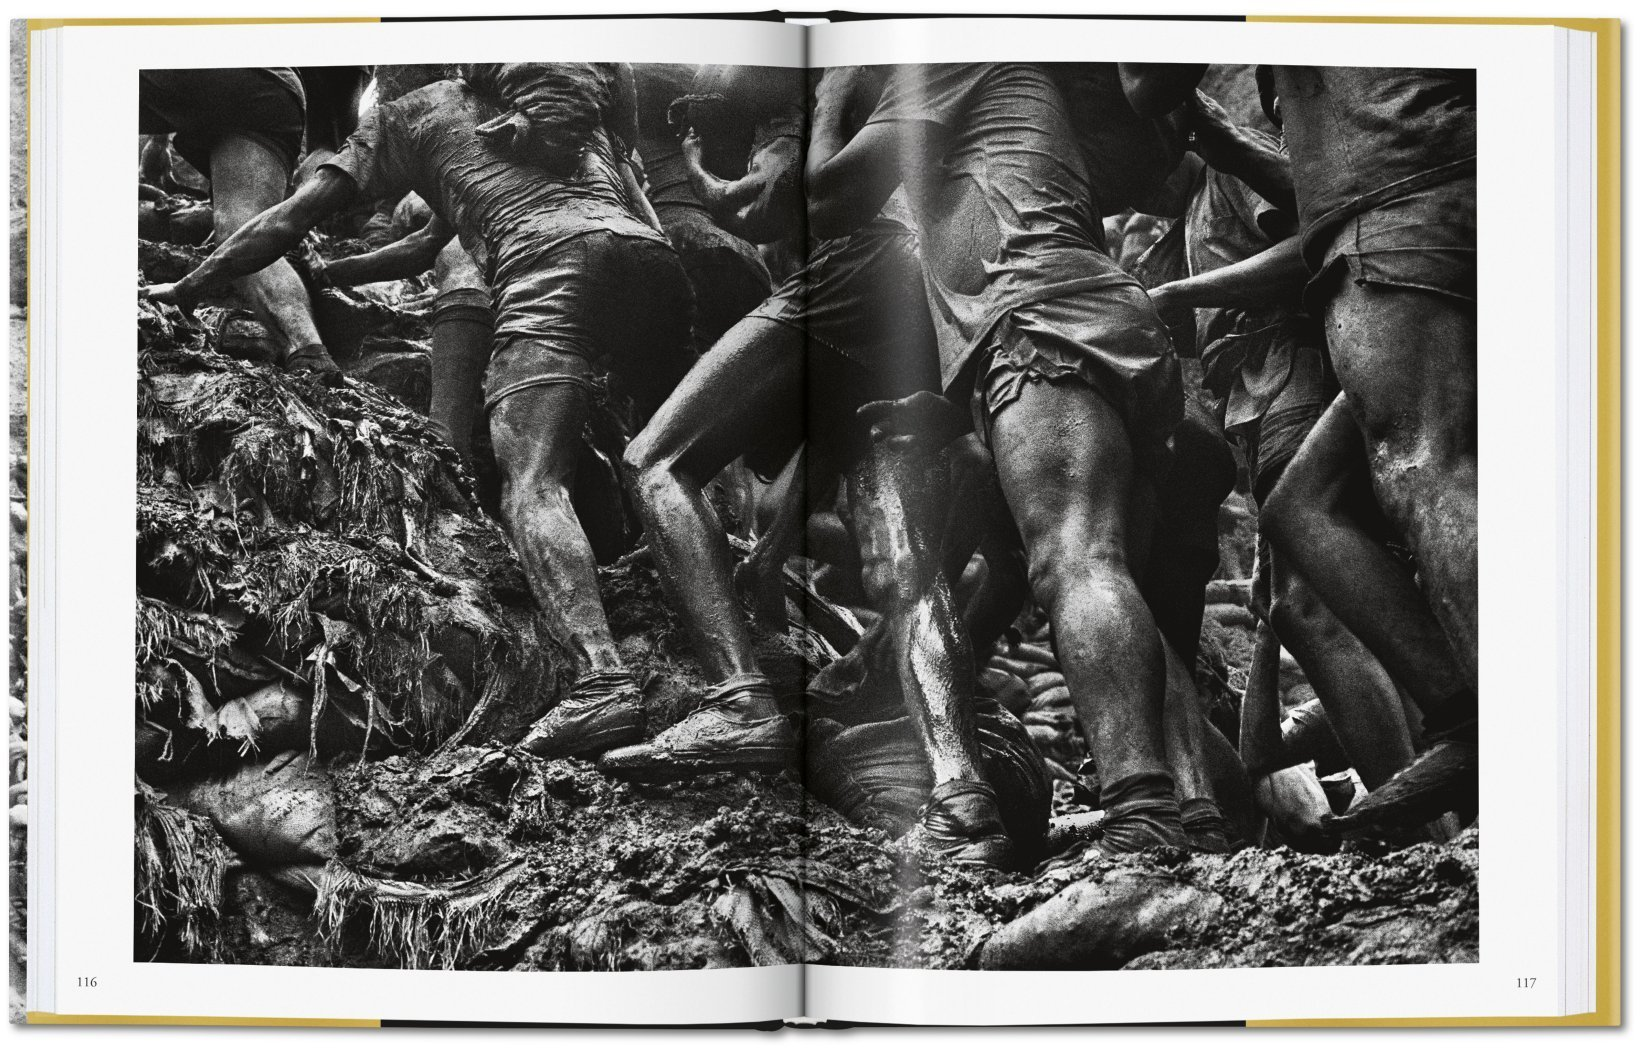 By Sebastian Salgado, Alan Riding from Sebastiao Salgado. Gold copyright Taschen 2019